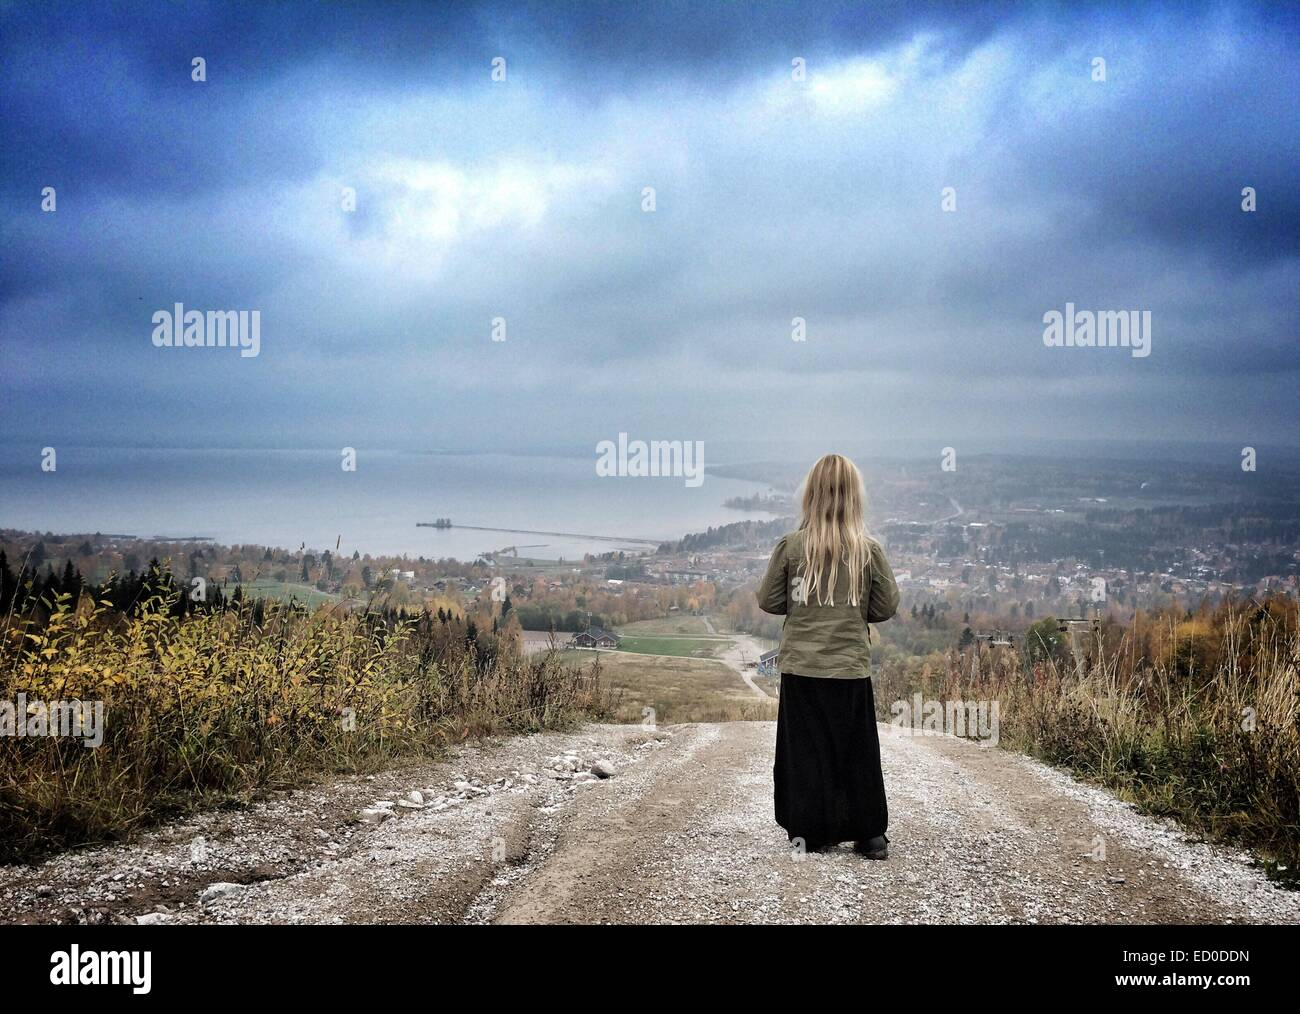 Sweden, Dalarna, Young girl (6-7) standing on top of hill and looking at city and lake below - Stock Image